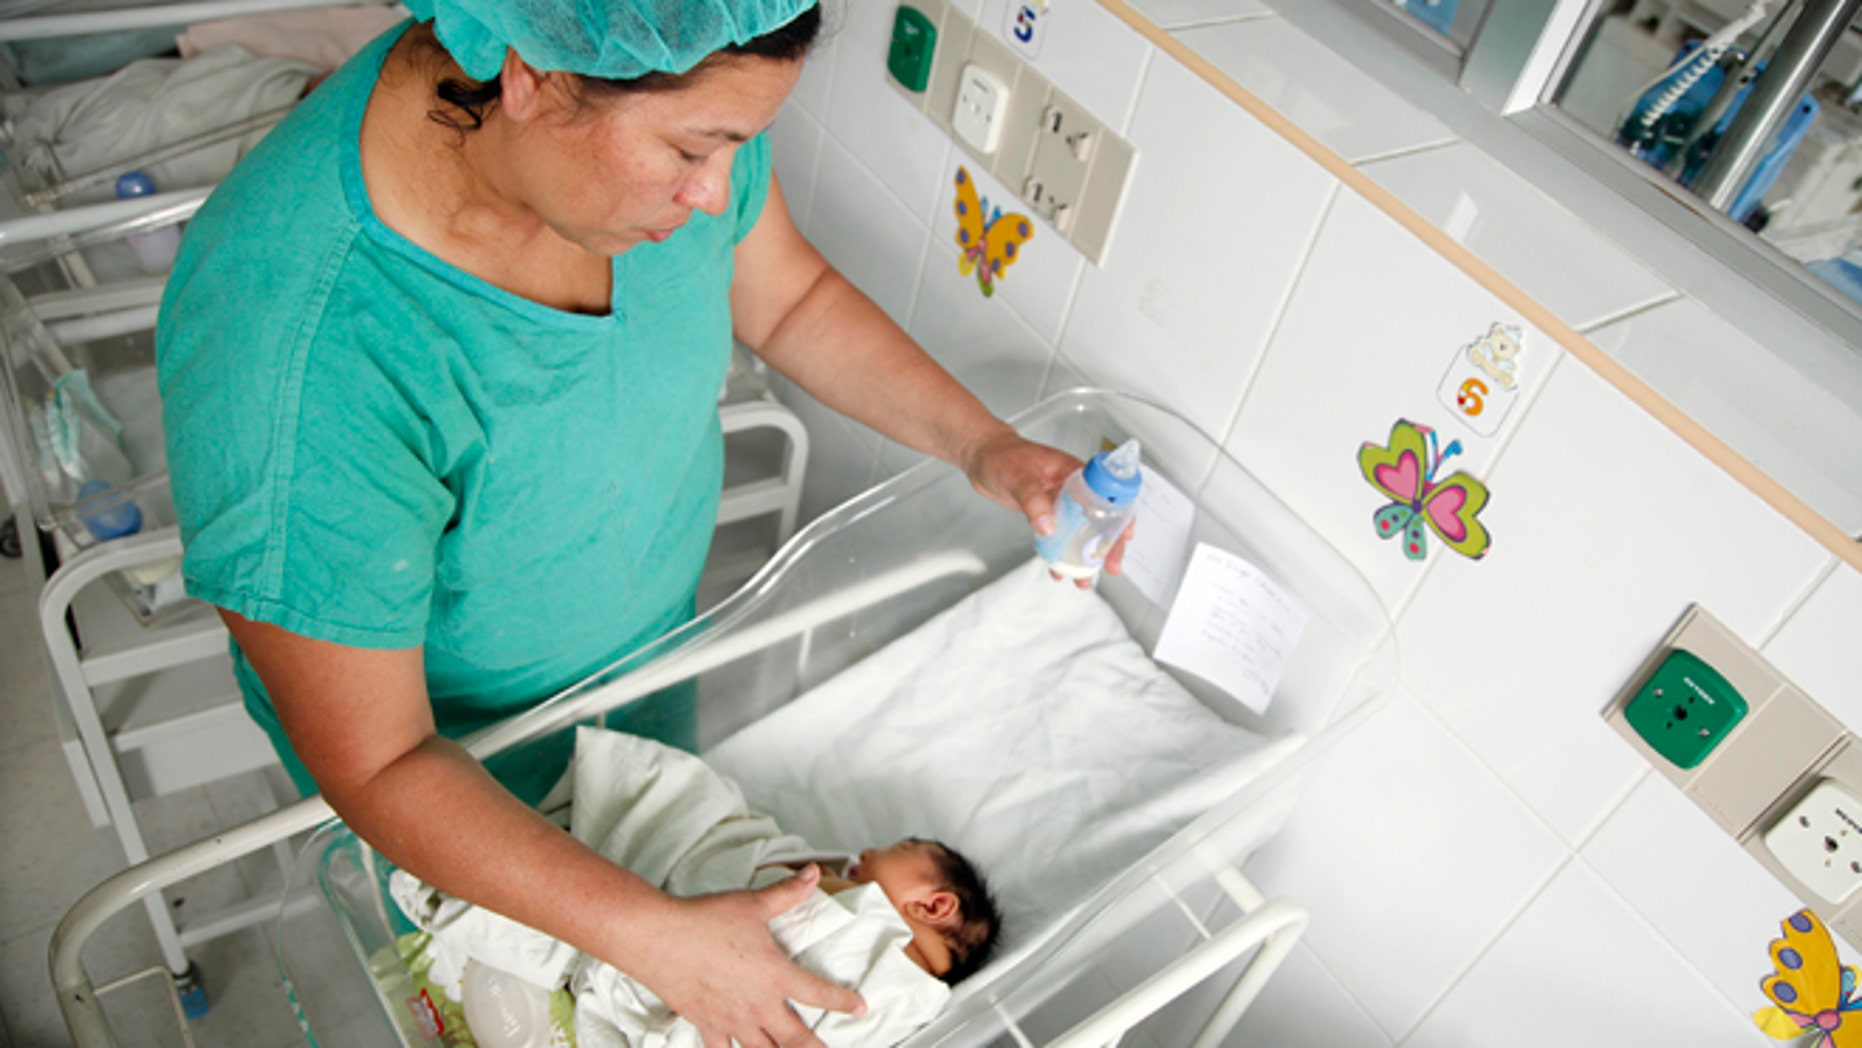 A nurse bottle feeds a newborn baby aflicted with microcephaly at a maternity ward of the University Hospital in Tegucigalpa, Honduras, Tuesday, July 26, 2016. Honduras' health minister, Dr. Yolani Batres, says eight babies with severe birth defects linked to the Zika virus have been born in the Central American country. Some women who contract Zika during their pregnancies have given birth to babies with microcephaly, which leads to babies with abnormally small heads and improperly developed brains. (AP Photo/Fernando Antonio)